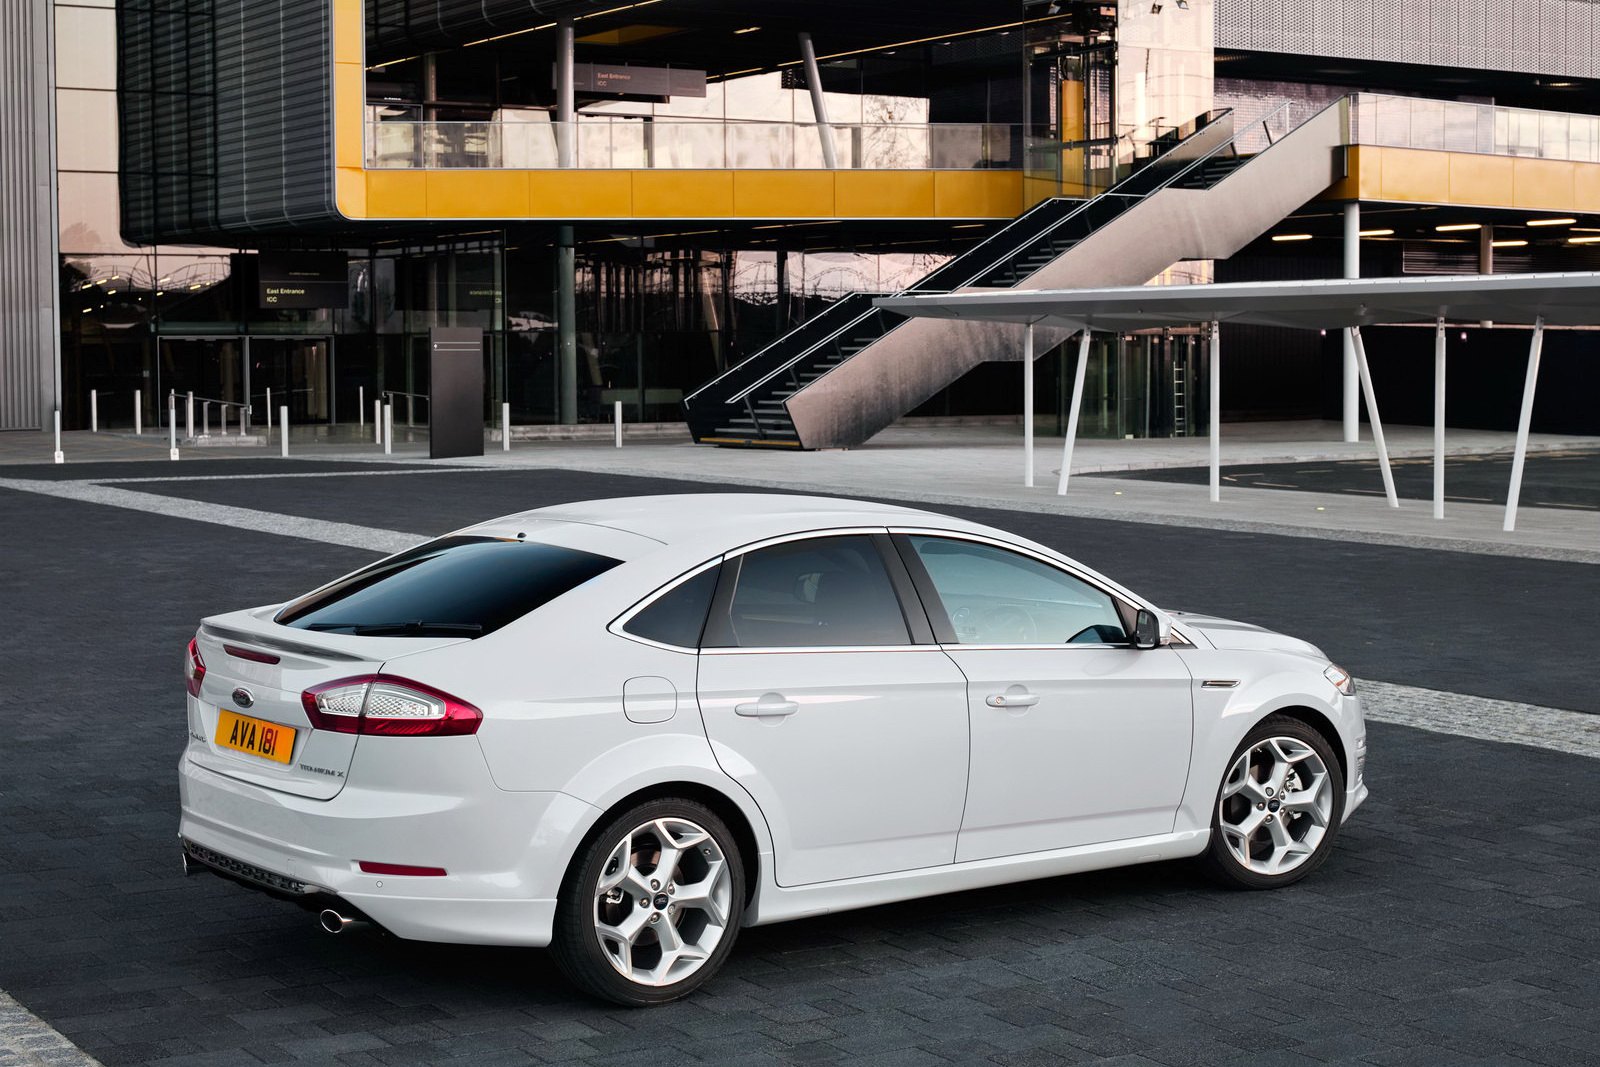 2011 Ford Mondeo 1 2011 Ford Mondeo   Features, Photos, Price